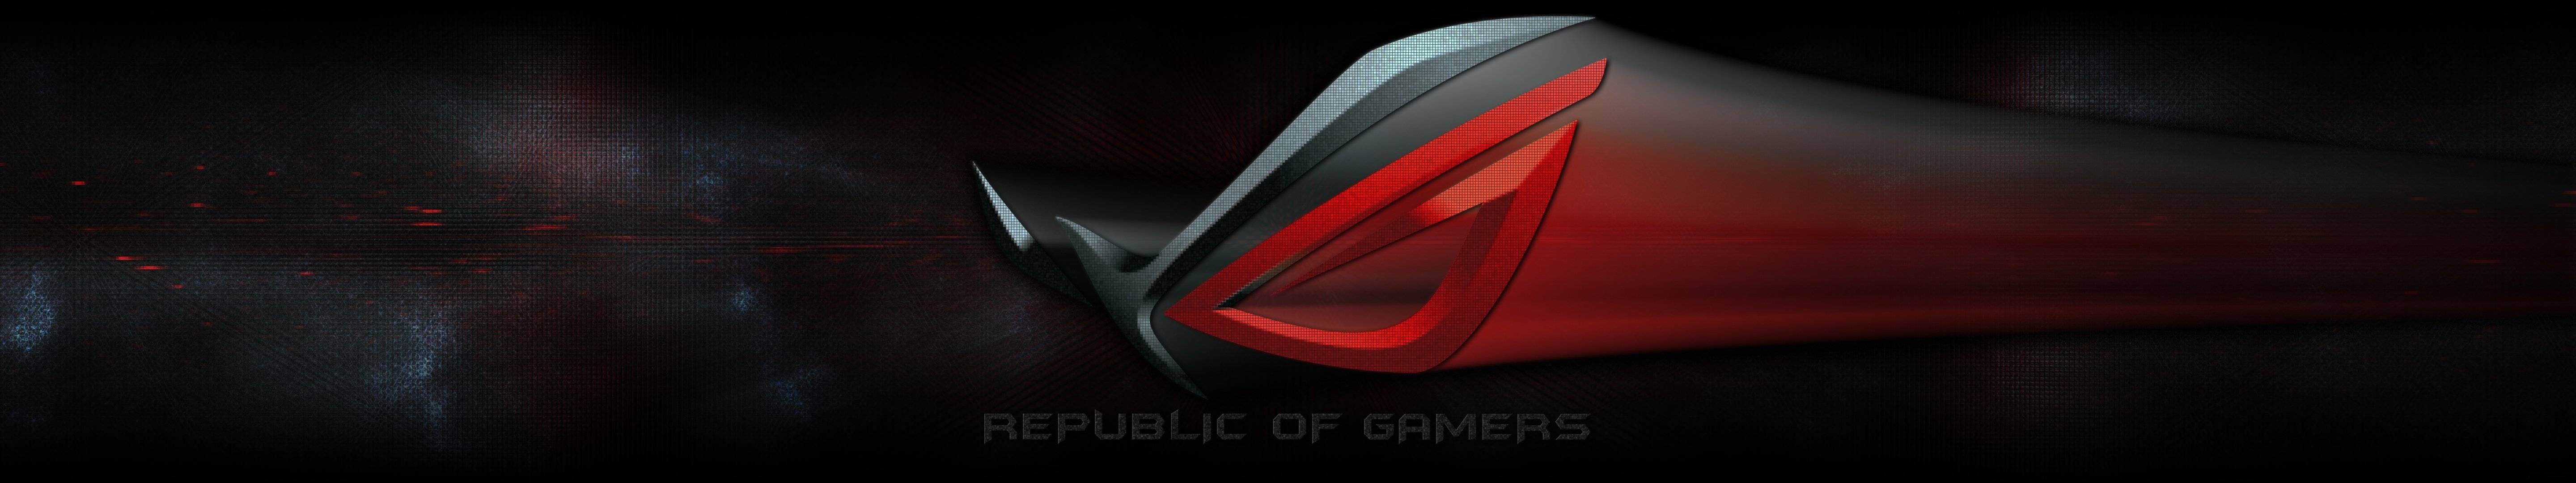 High resolution Republic Of Gamers (ROG) triple monitor 5760x1080 wallpaper ID:390668 for computer